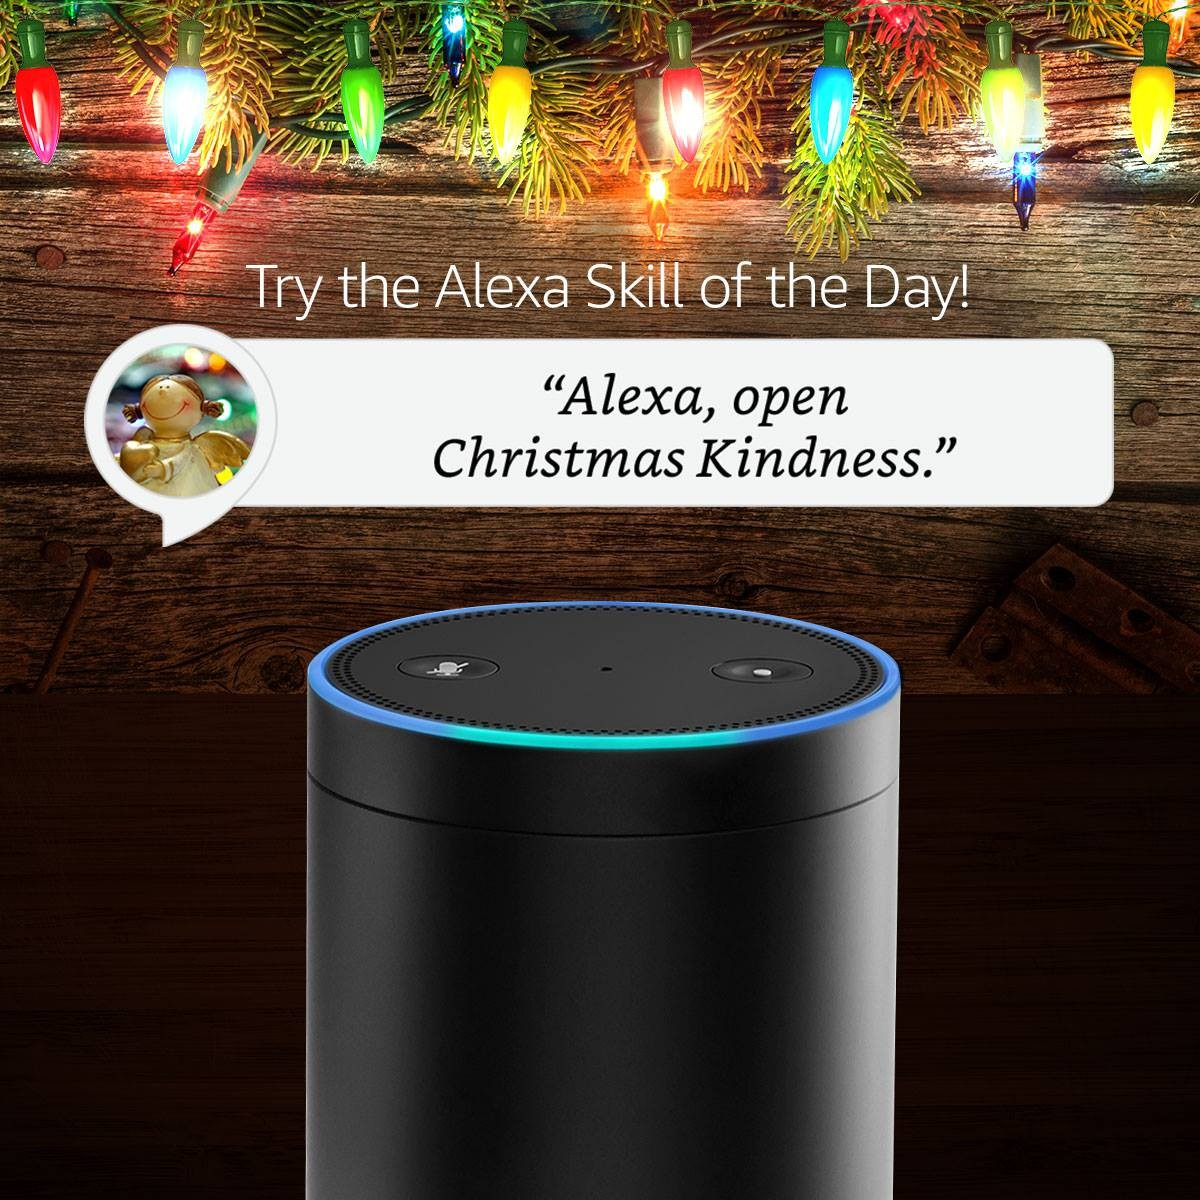 Amazon Giving Gift Cards with some Alexa Commands